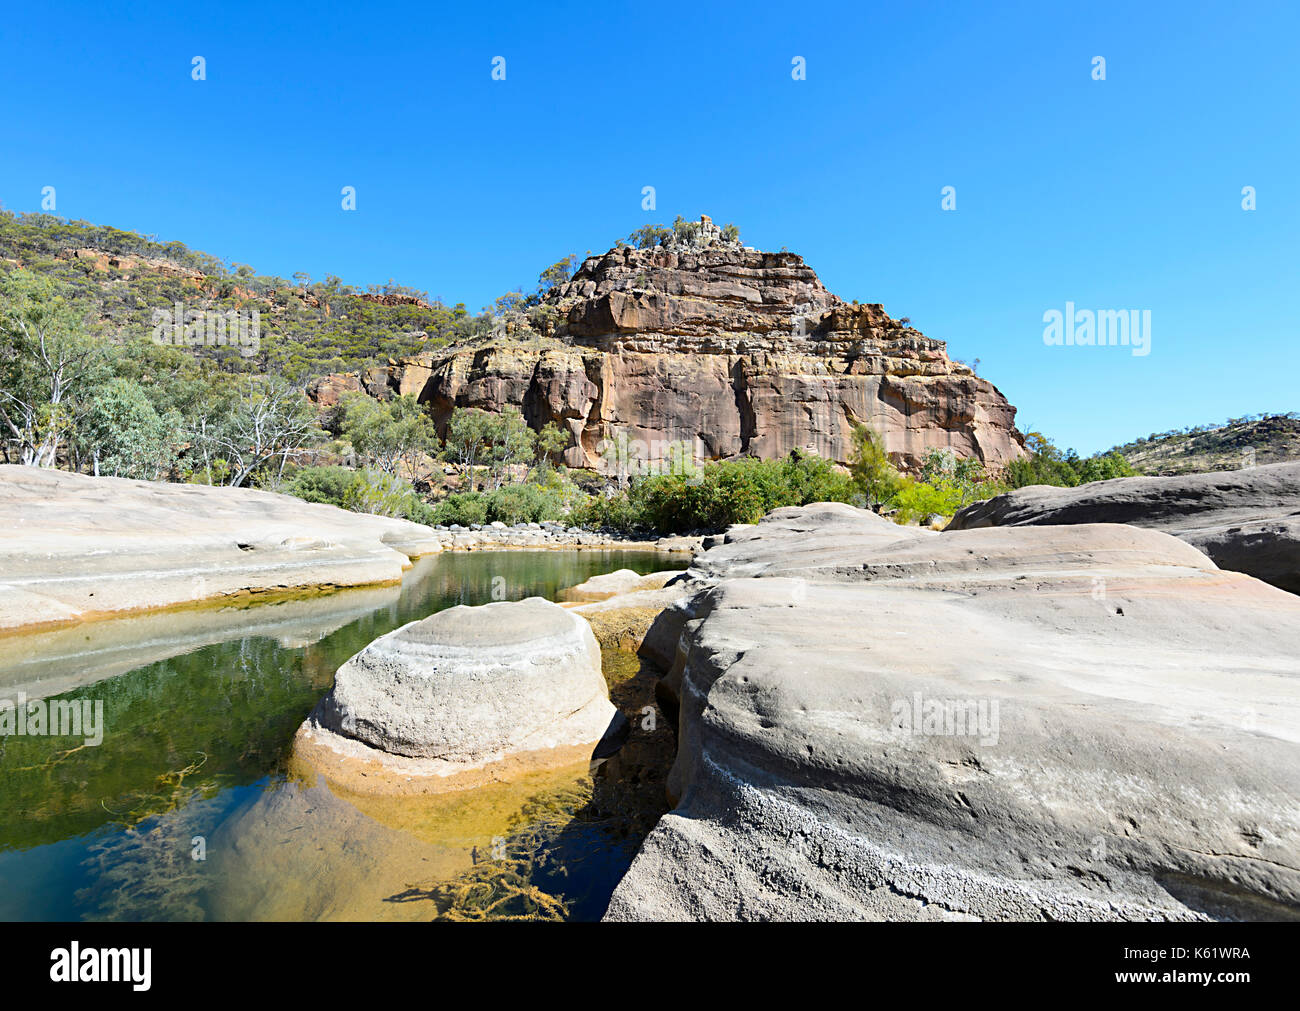 The eroded Pyramid in Porcupine Gorge National Park, Queensland, QLD, Australia - Stock Image